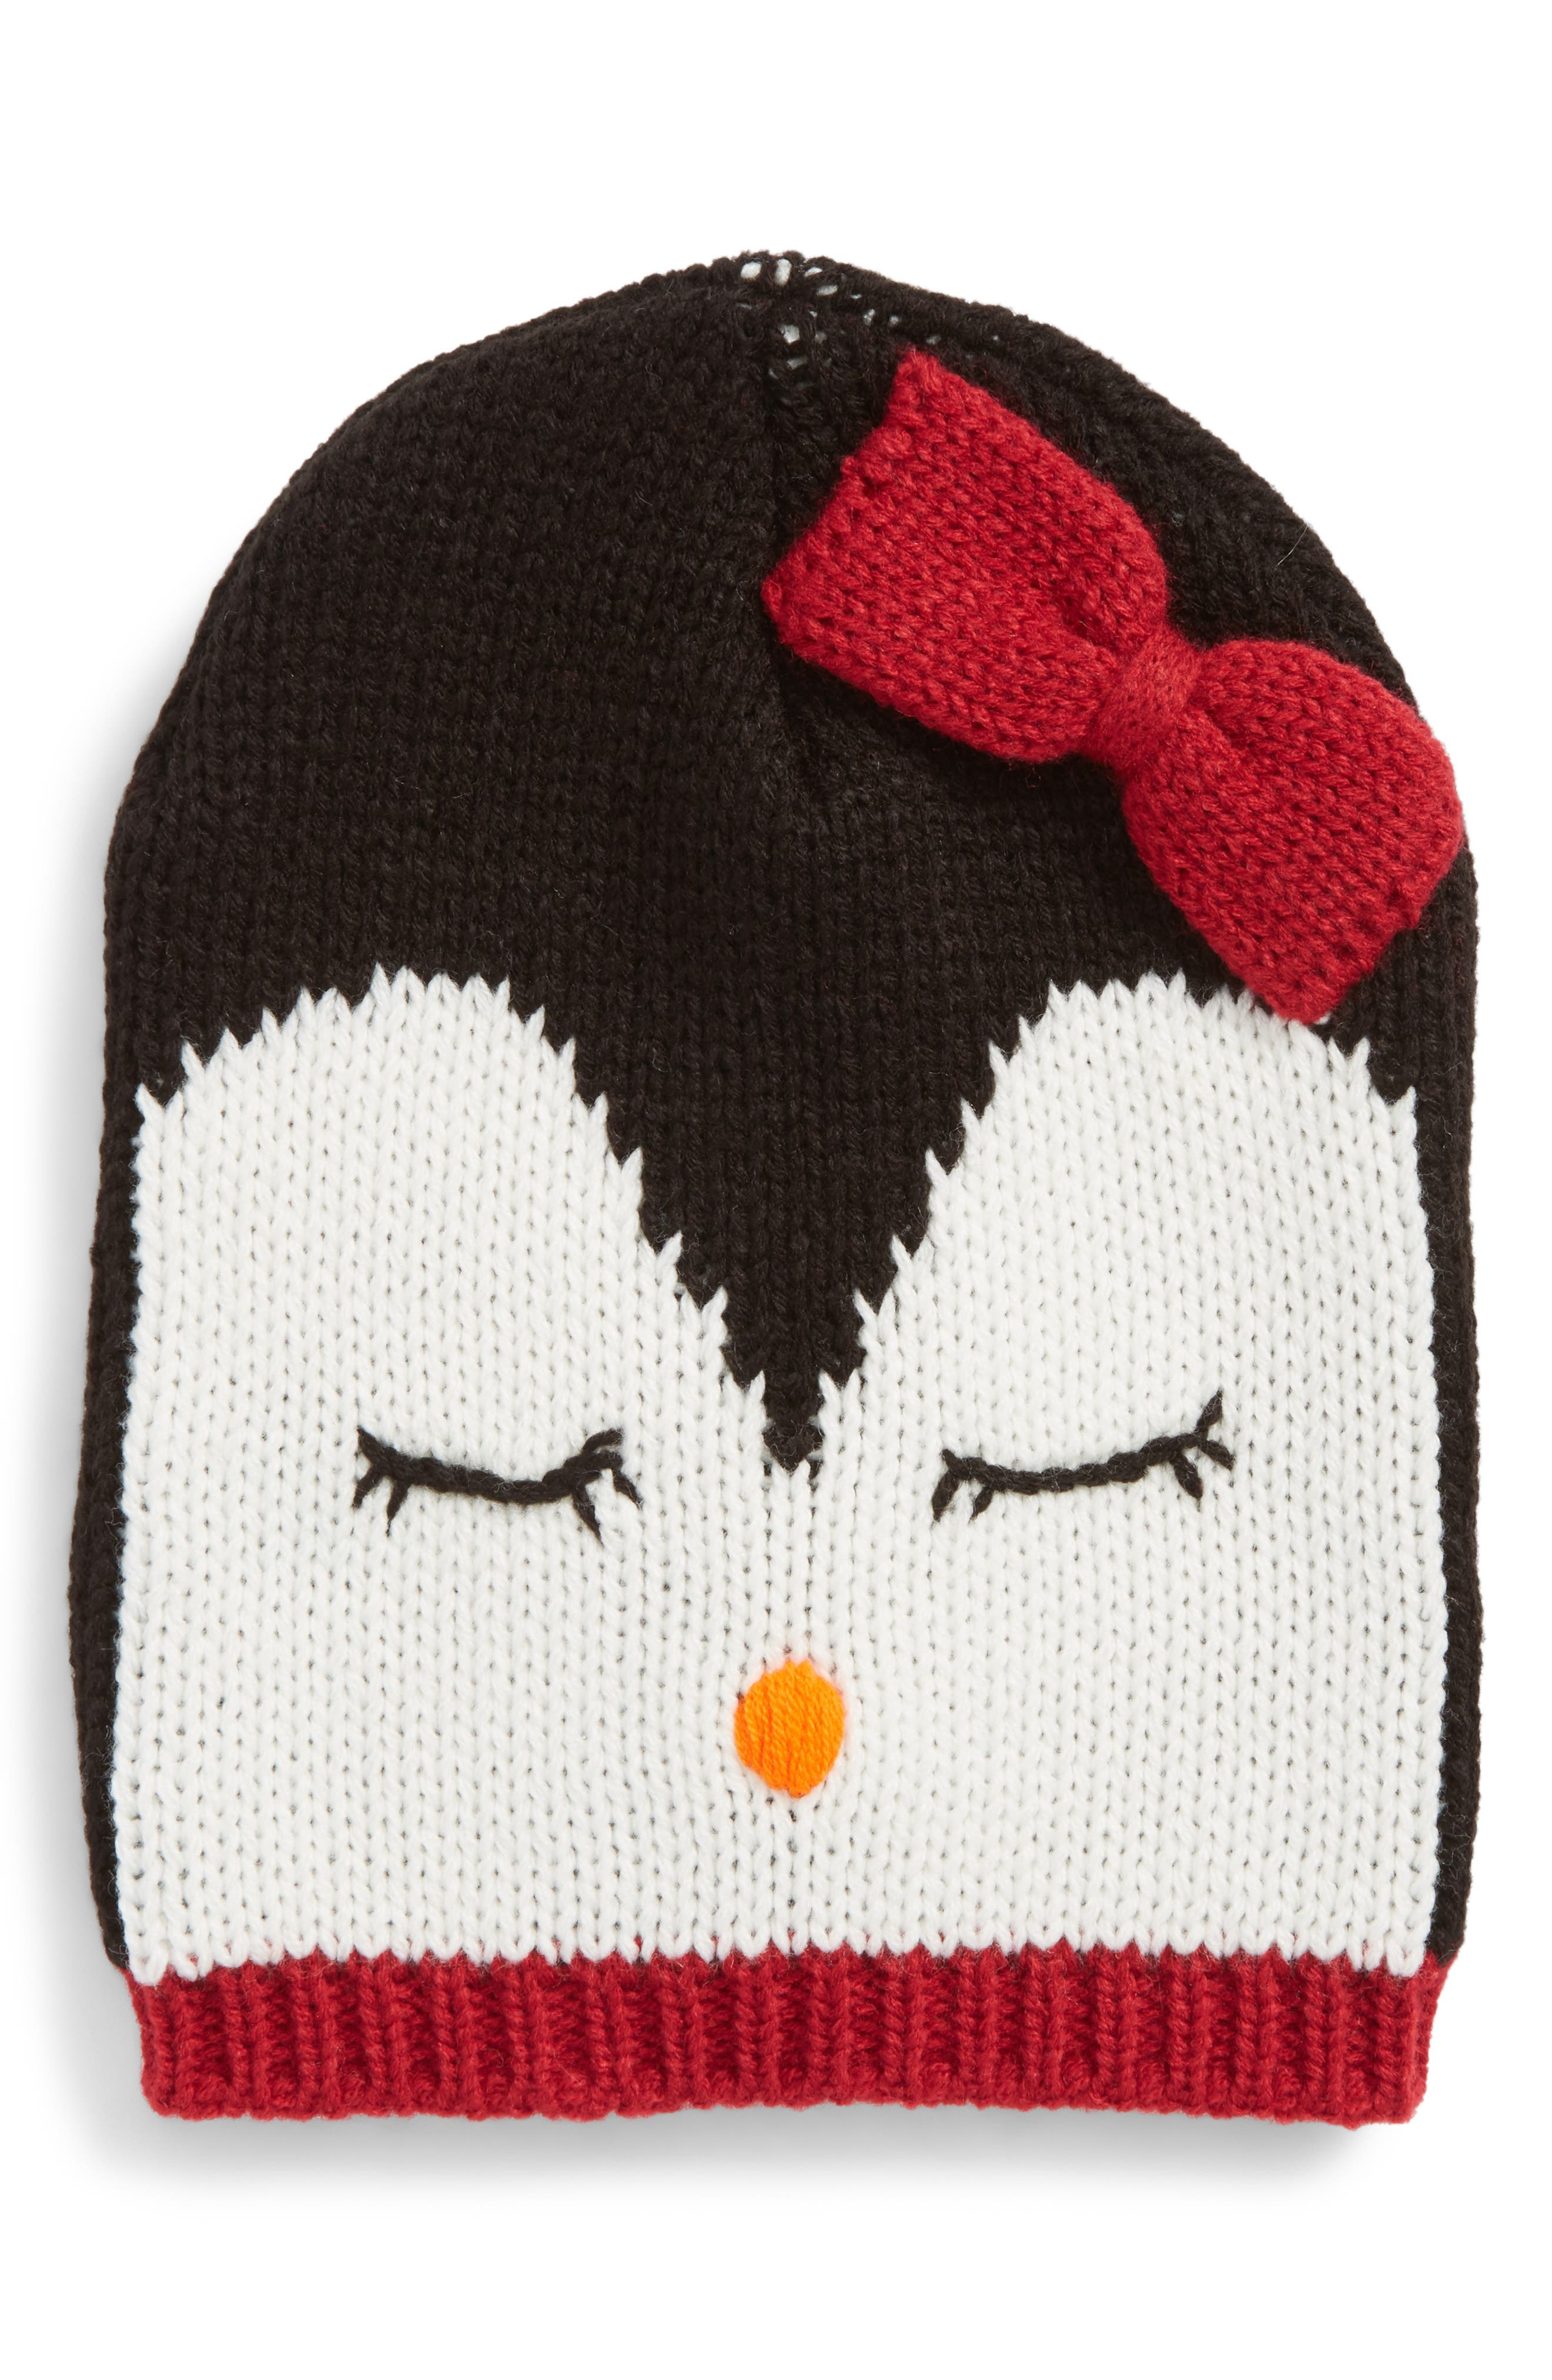 Penguin Face Beanie,                             Main thumbnail 1, color,                             Black Penguin